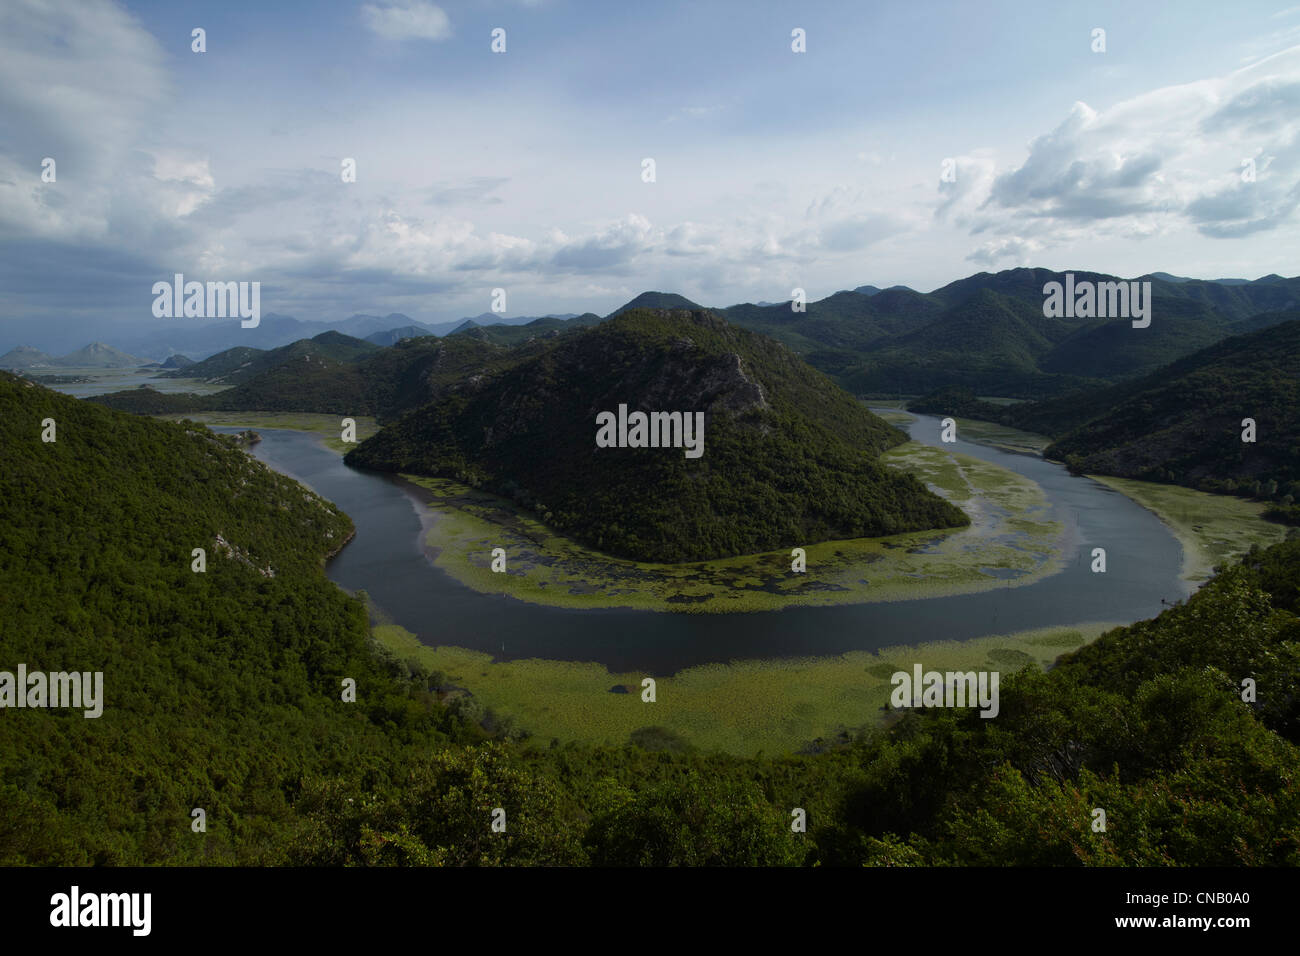 Meandering river in valley - Stock Image